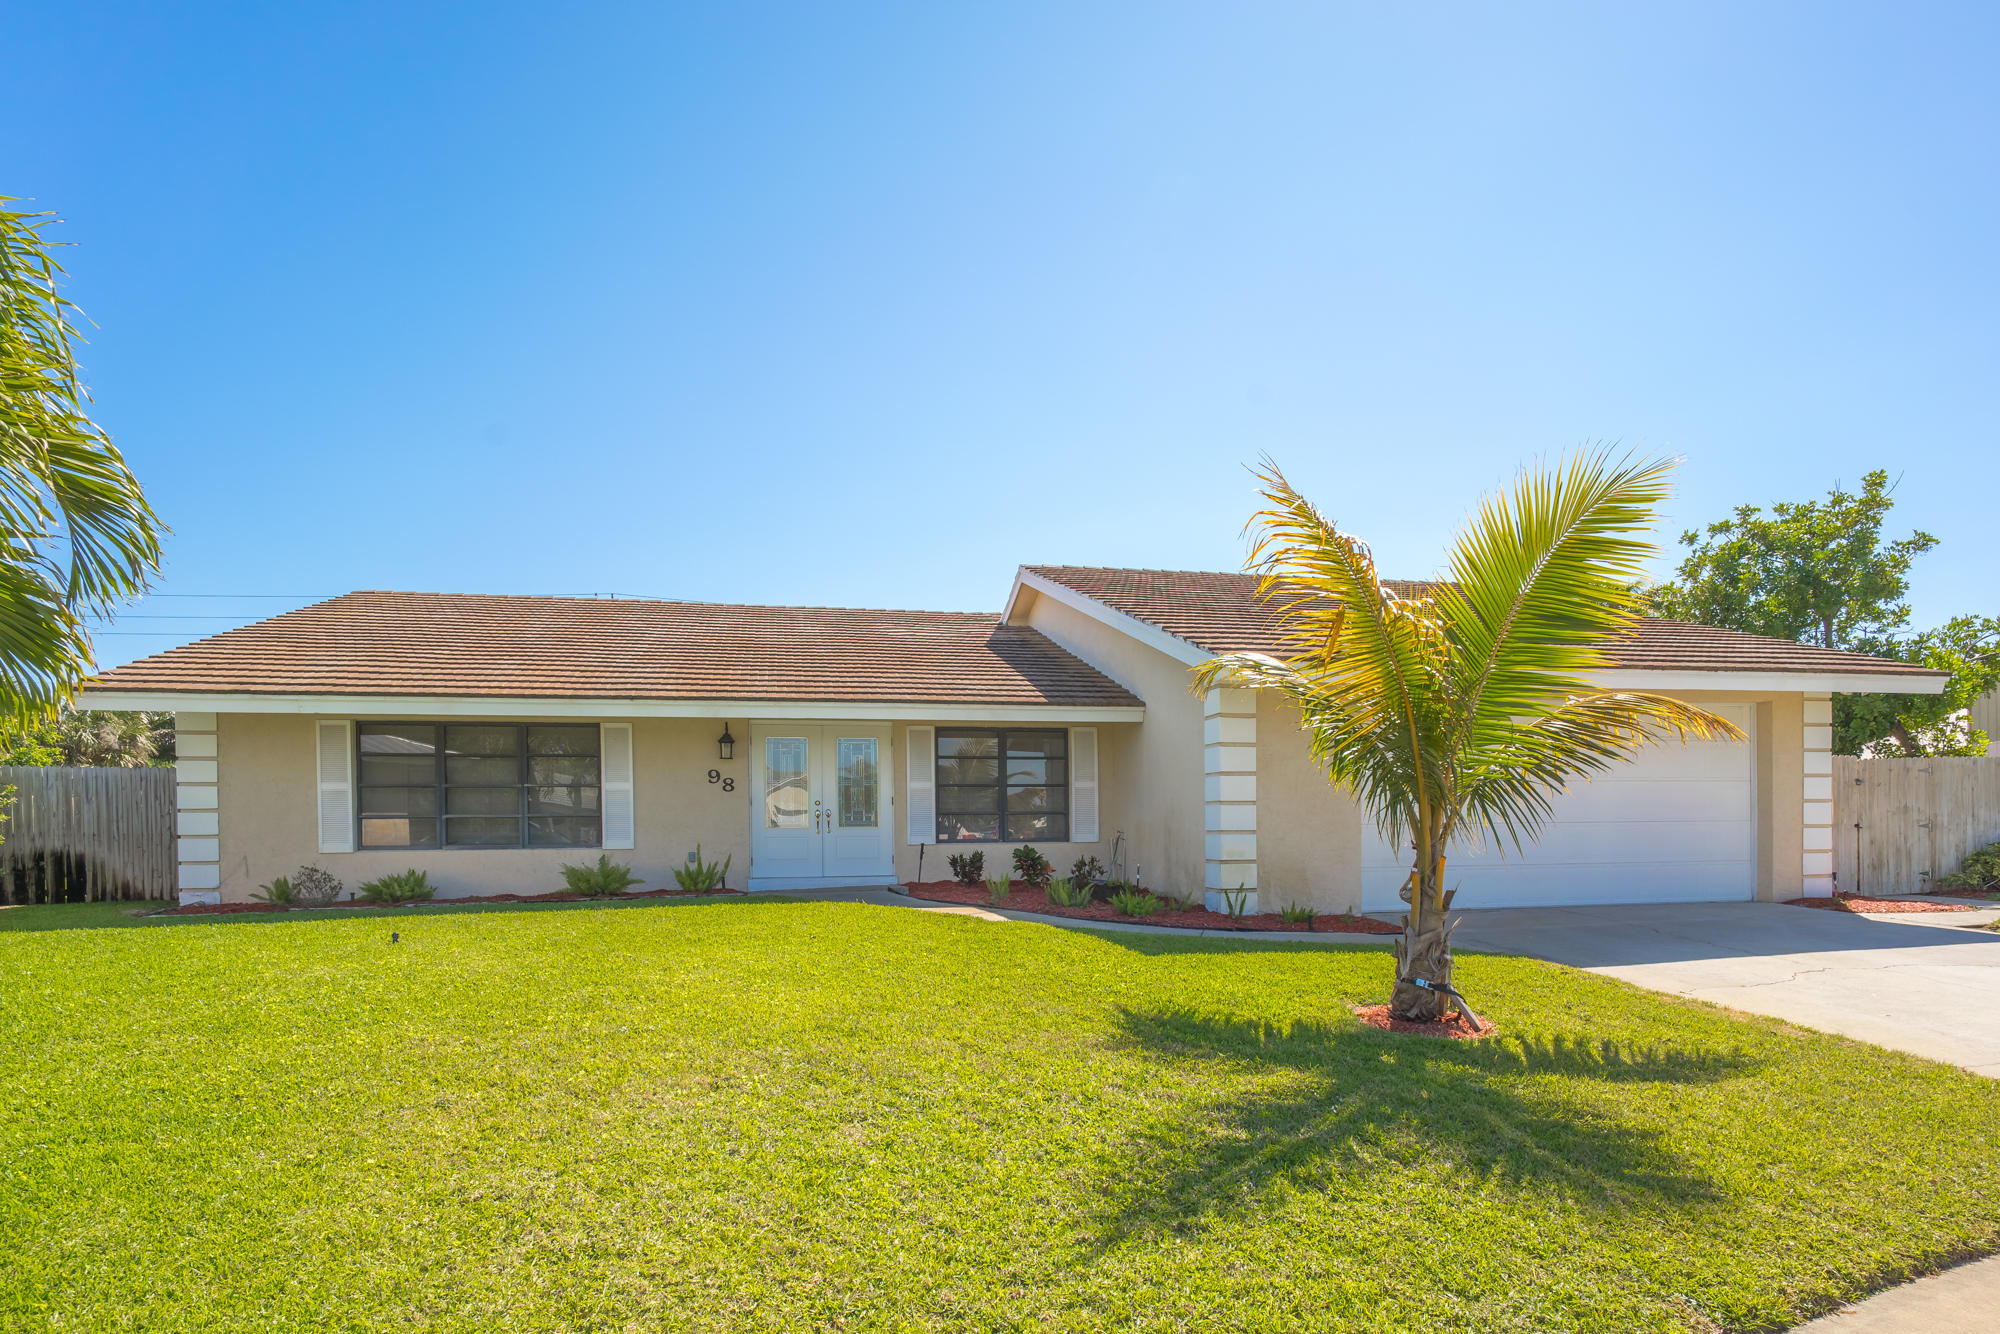 98 Hickory Hill Road, Tequesta, Florida 33469, 3 Bedrooms Bedrooms, ,2.1 BathroomsBathrooms,Single Family,For Rent,TEQUESTA PINES,Hickory Hill,RX-10417602